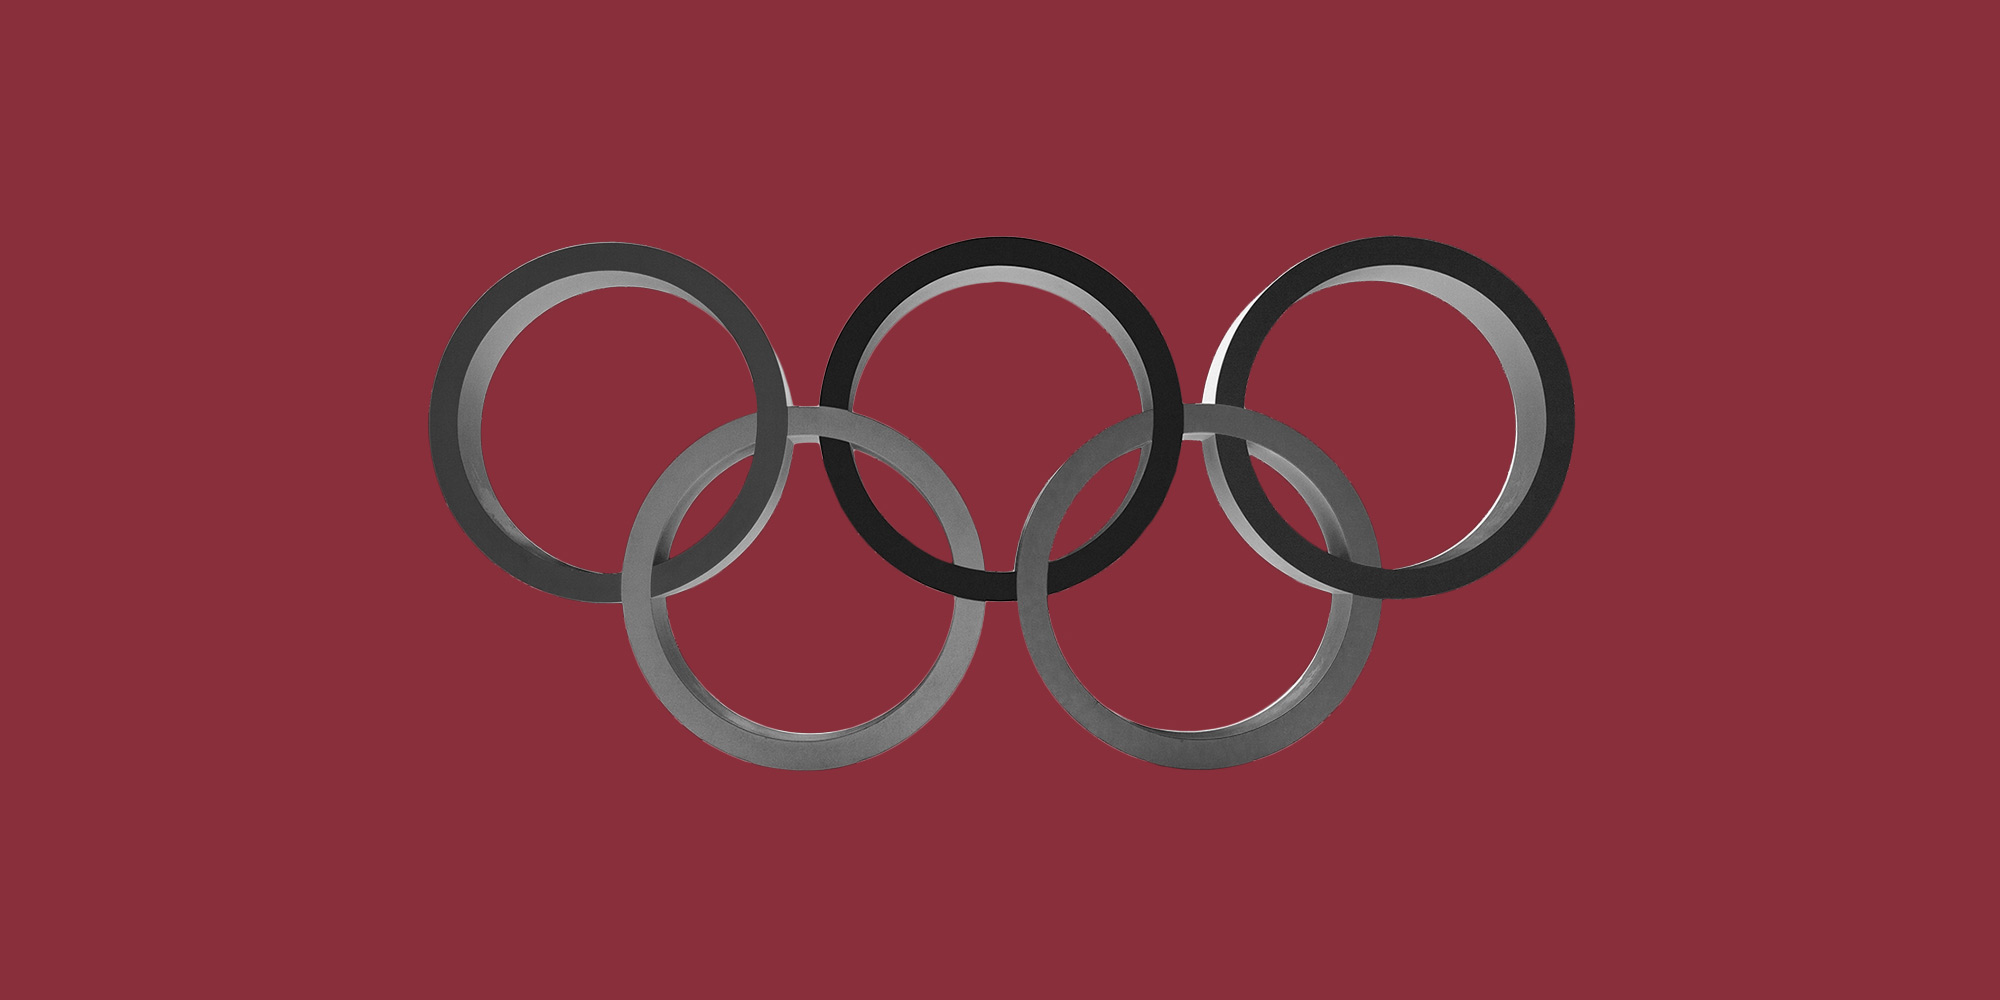 The Olympic rings. Olympic athletes in addiction recovery